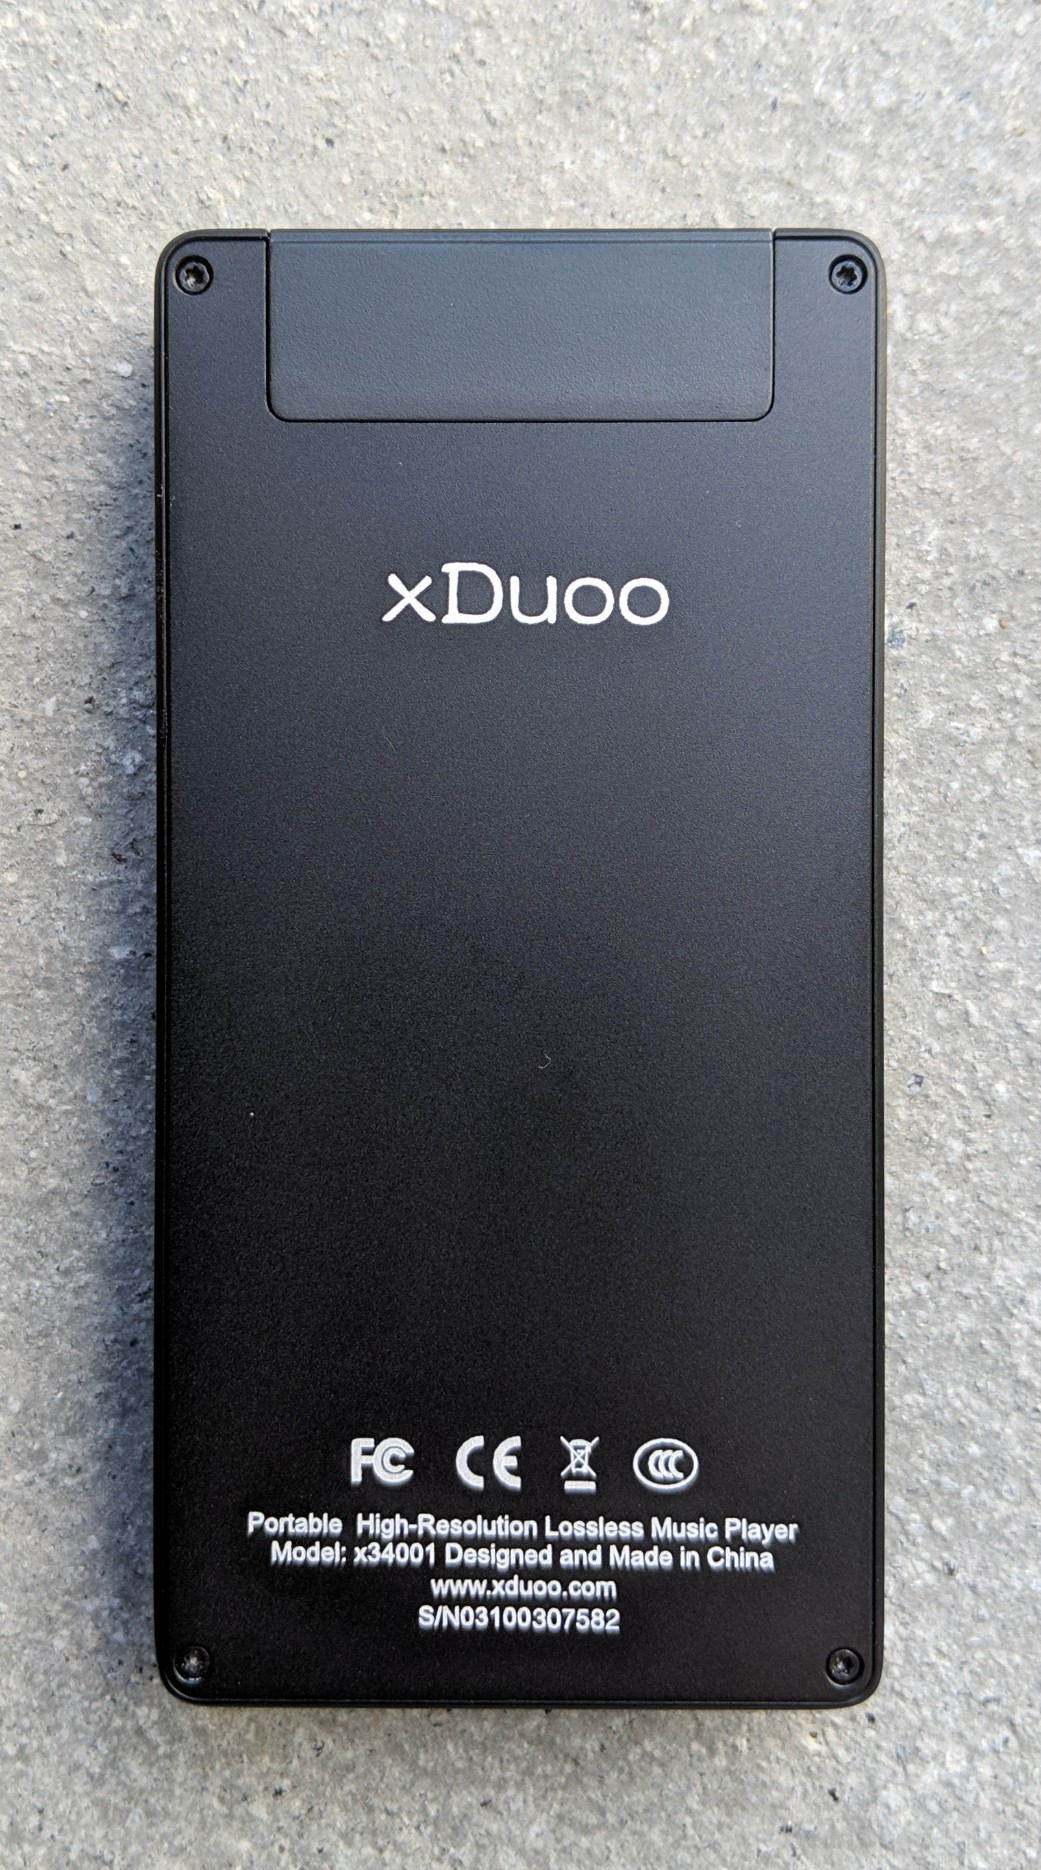 Xduoo X3 2nd generation review